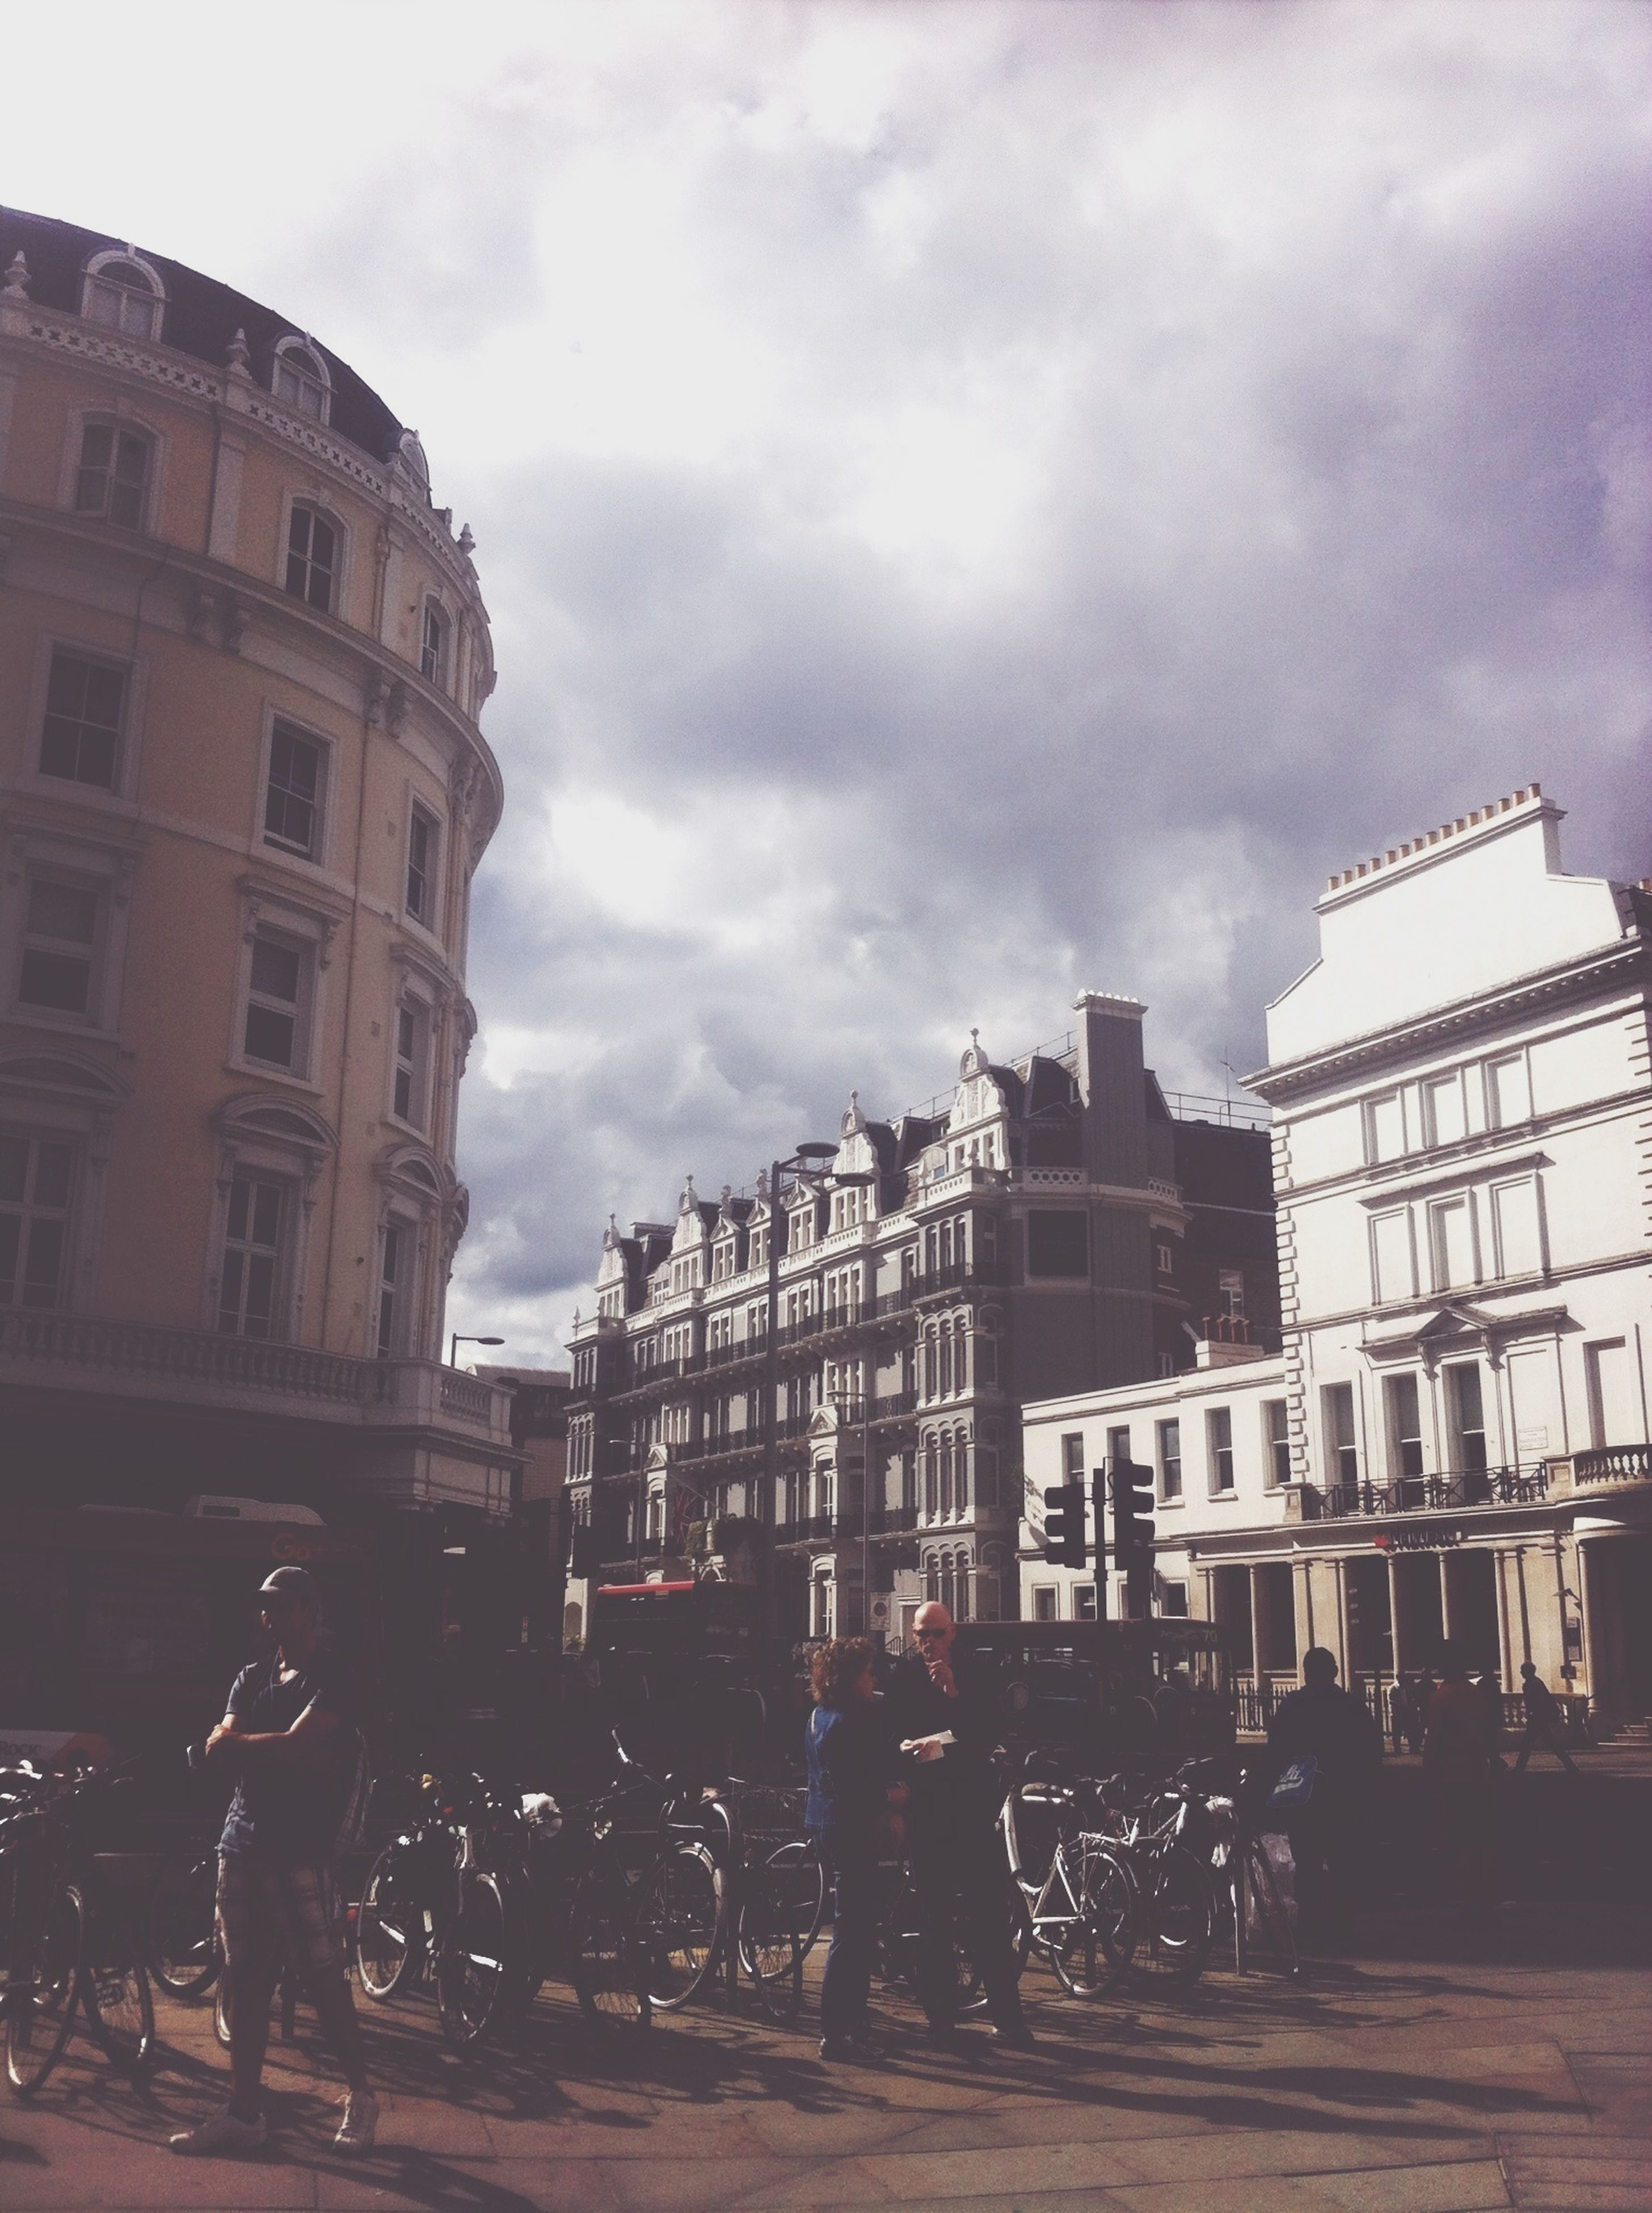 building exterior, architecture, built structure, sky, city, cloud - sky, building, cloudy, street, residential building, city life, residential structure, cloud, overcast, incidental people, day, window, outdoors, weather